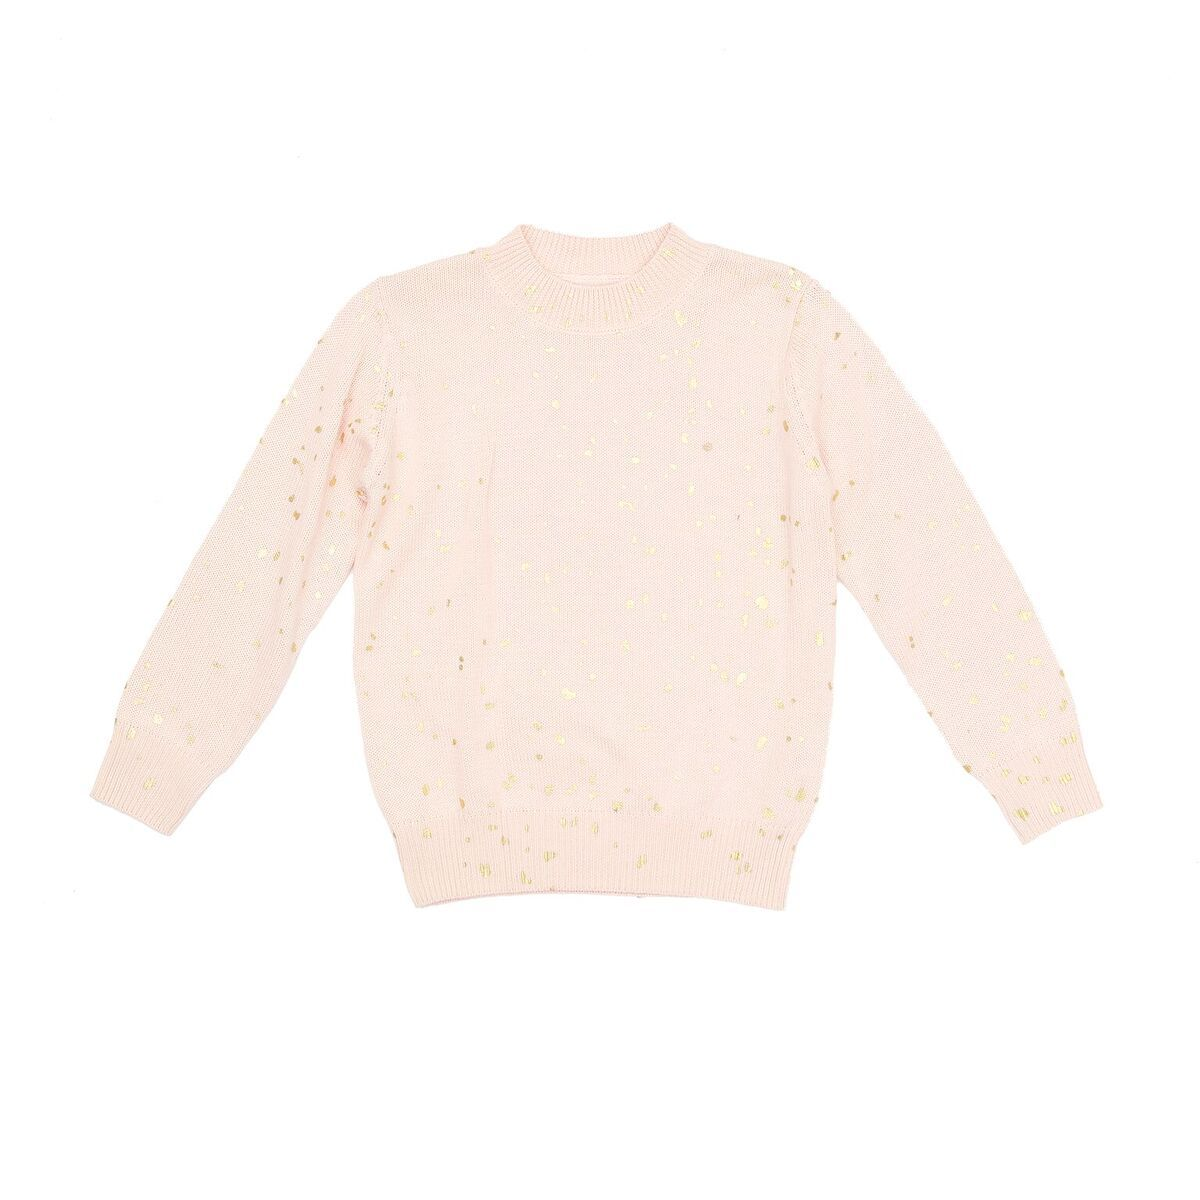 B+L Golden Goose Jumper